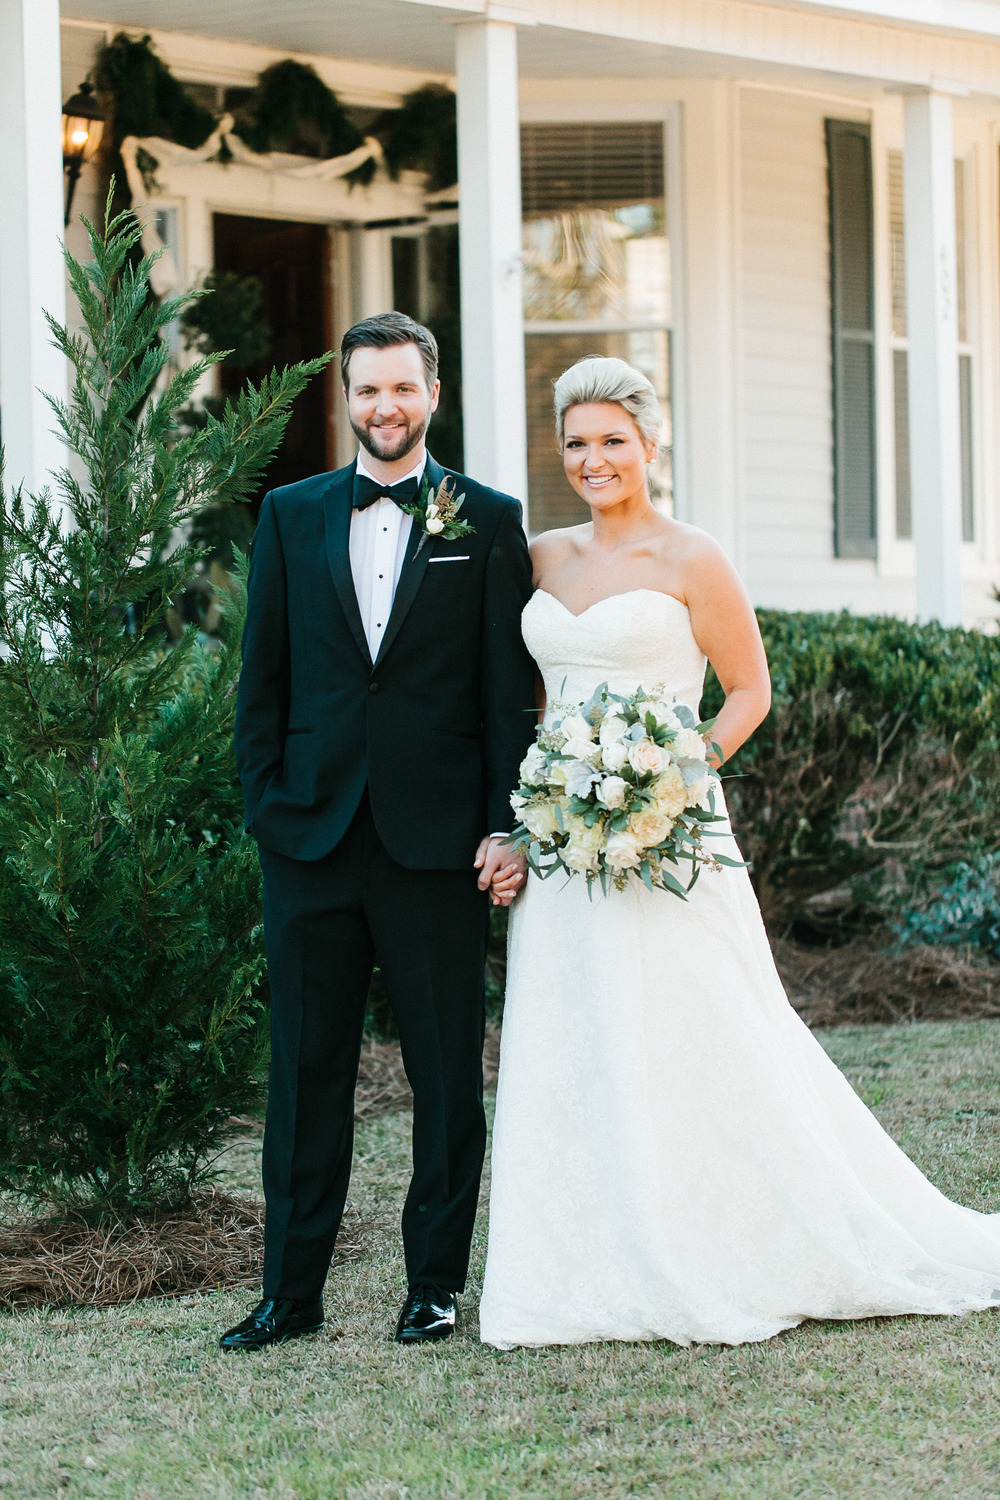 Emily + Sam's Winter Georgia wedding in Stillmore, GA by Mark Williams Studio